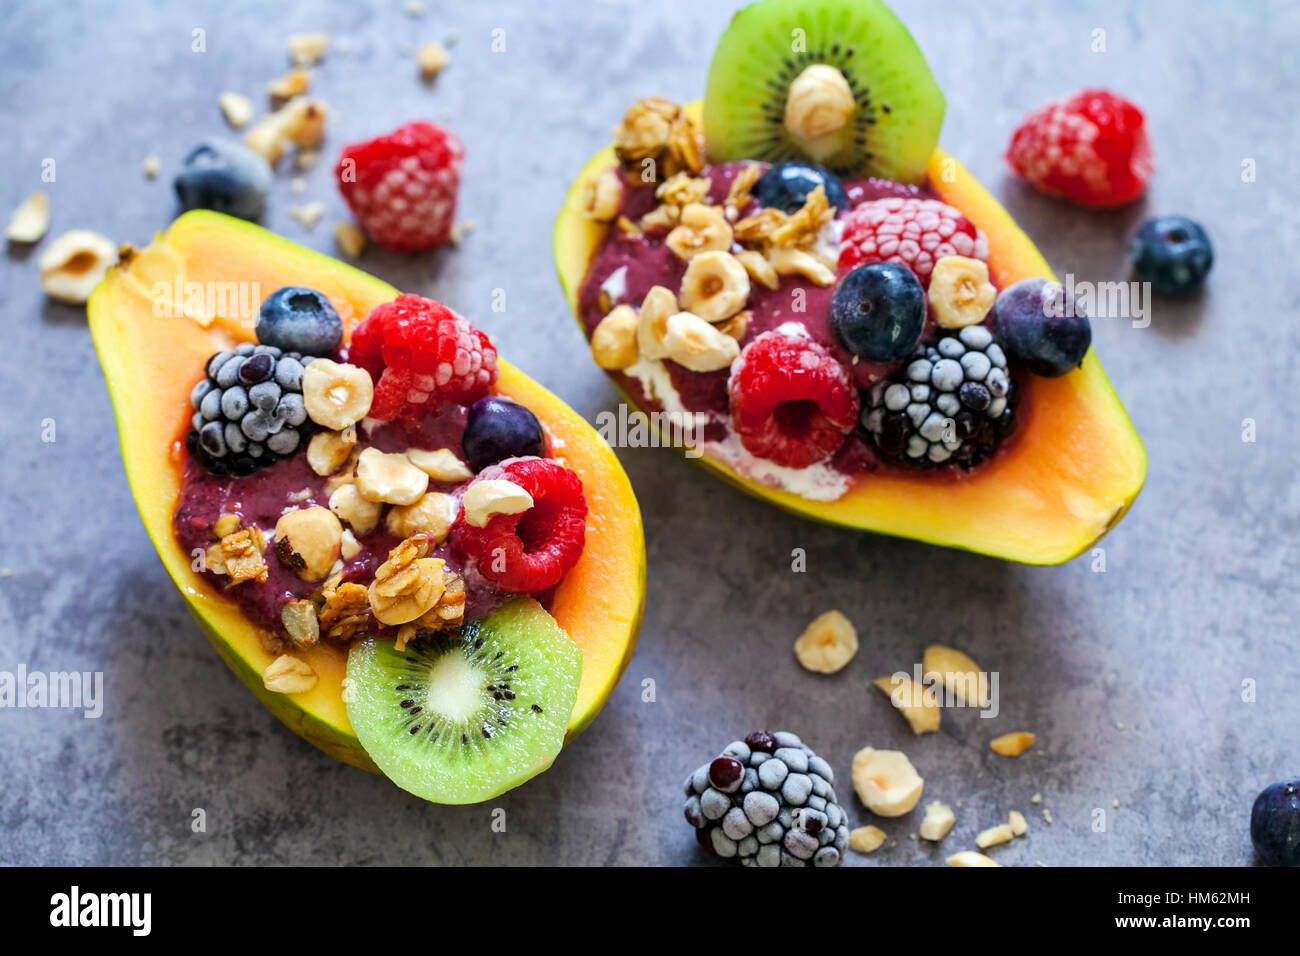 Papaya filled with mixed berry smoothie - Stock Image